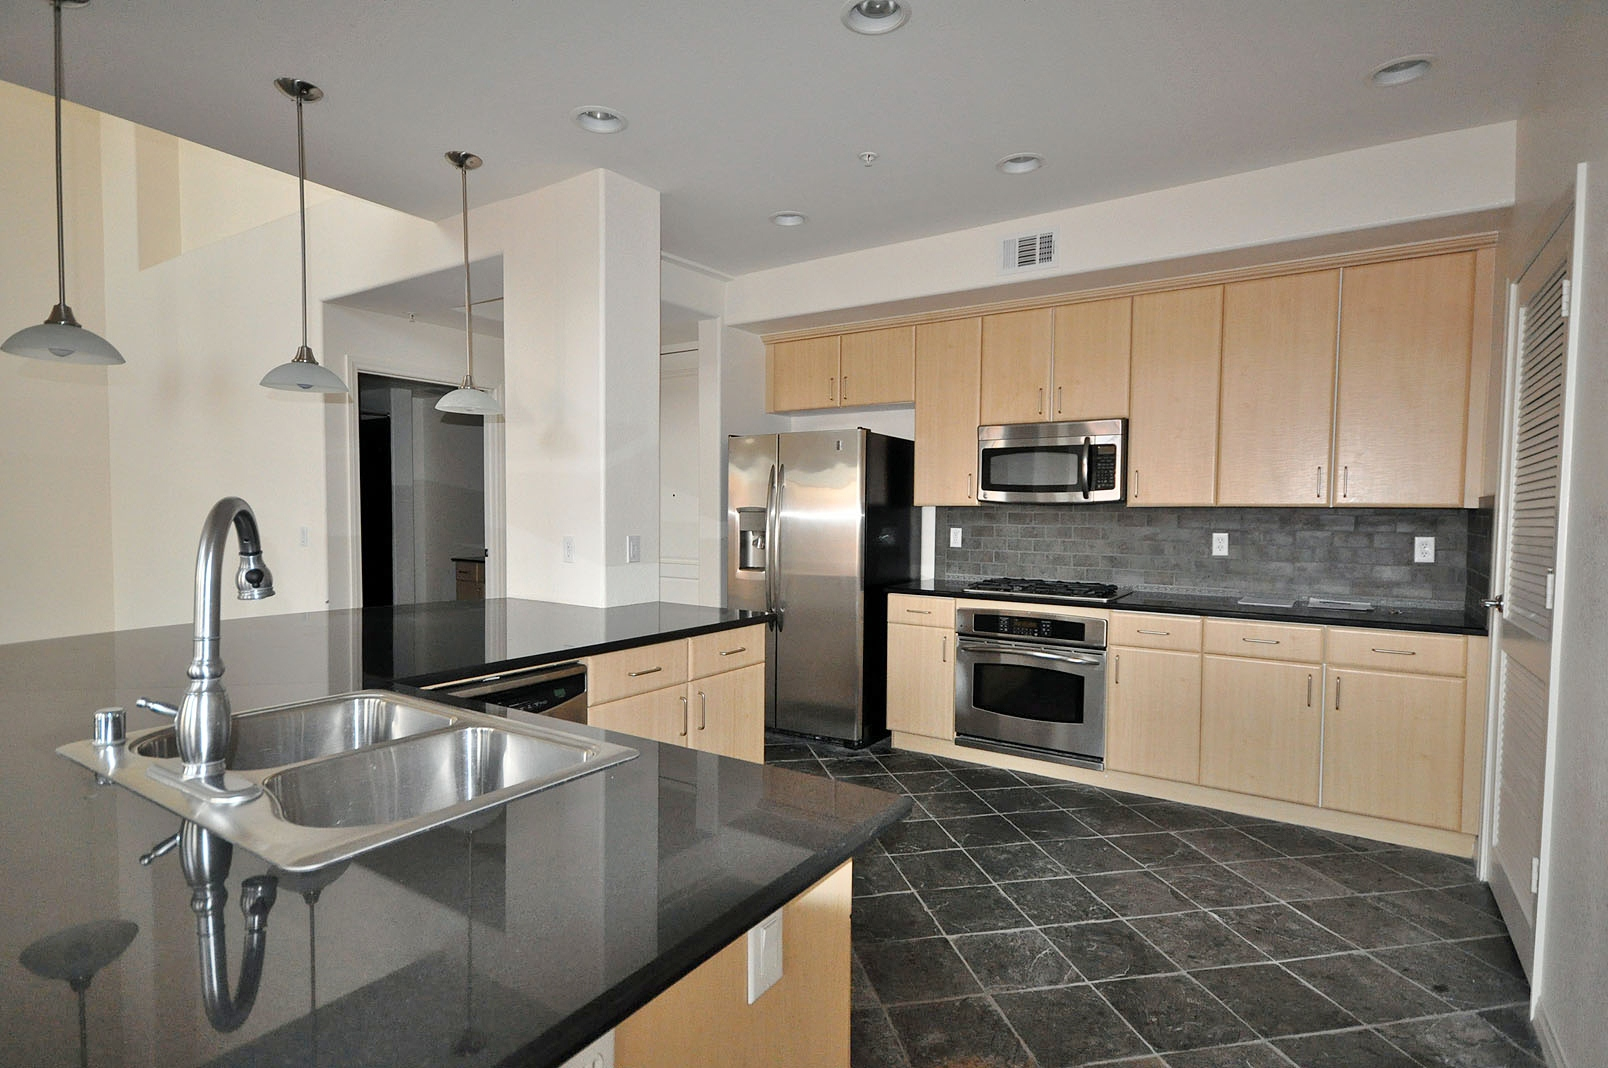 Our listing at manhattan las vegas condos 424 las vegas for Loft in manhattan for sale